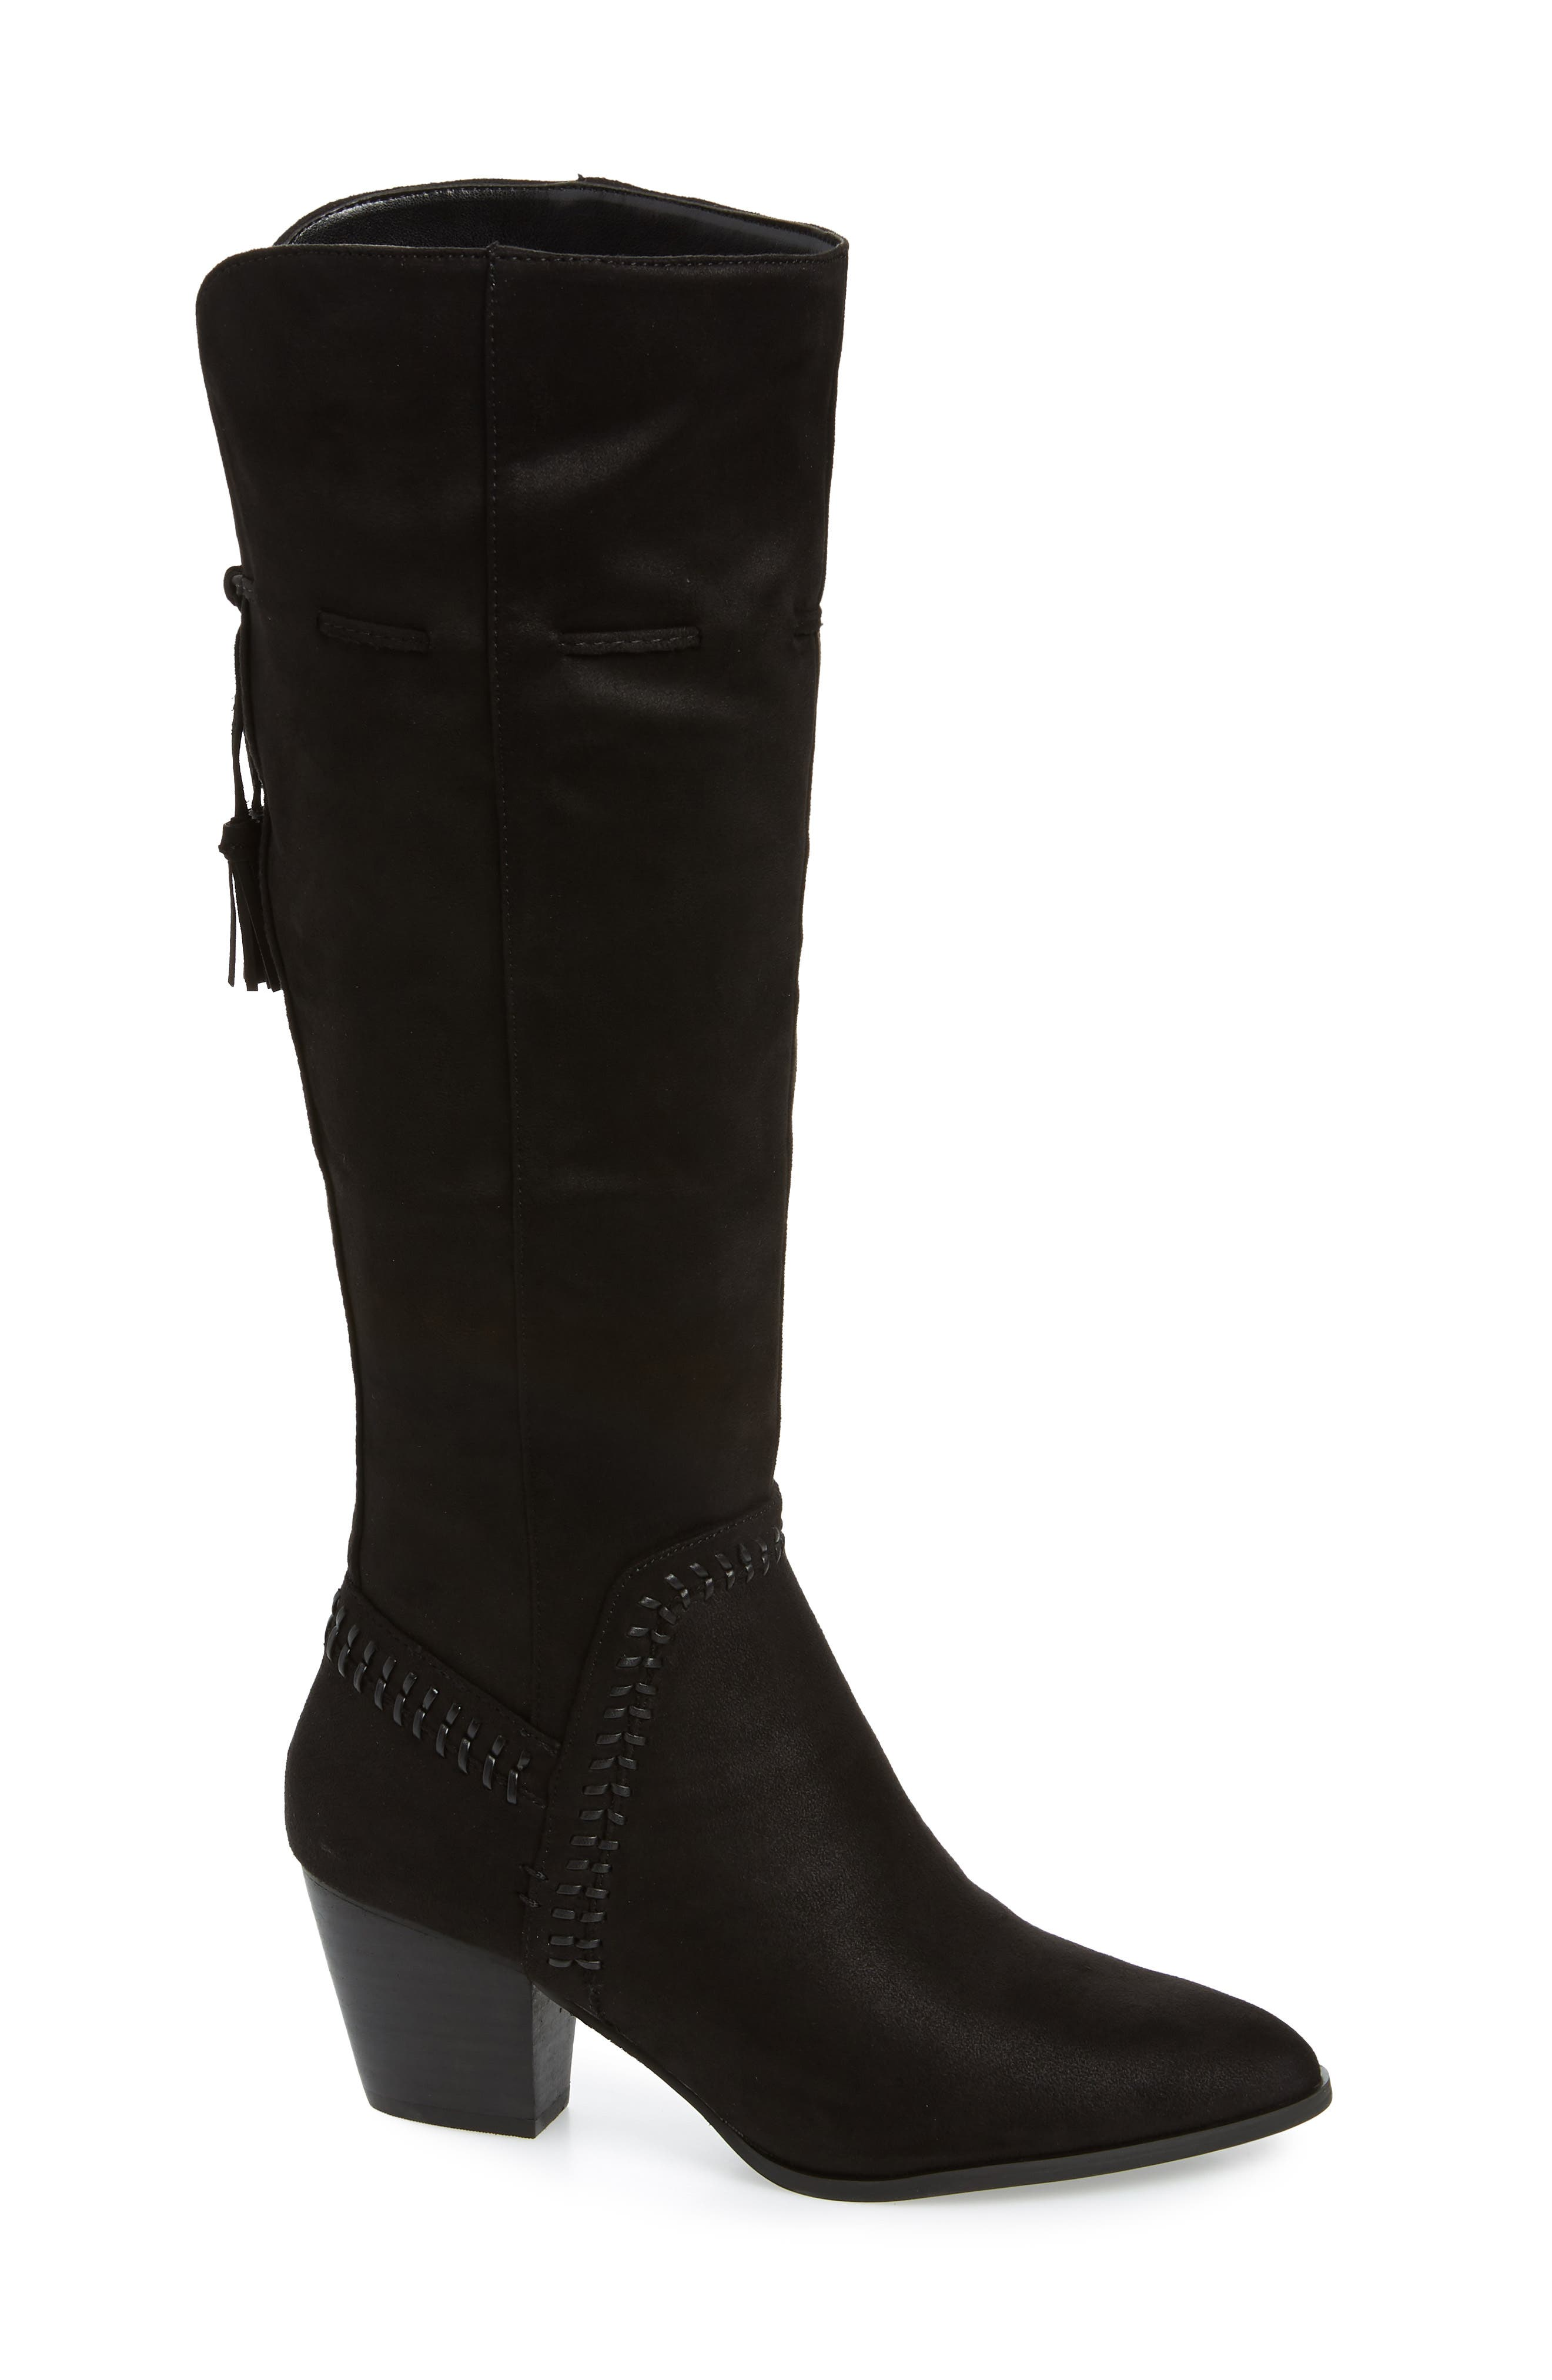 BELLA VITA, Eleanor II Knee High Boot, Main thumbnail 1, color, BLACK